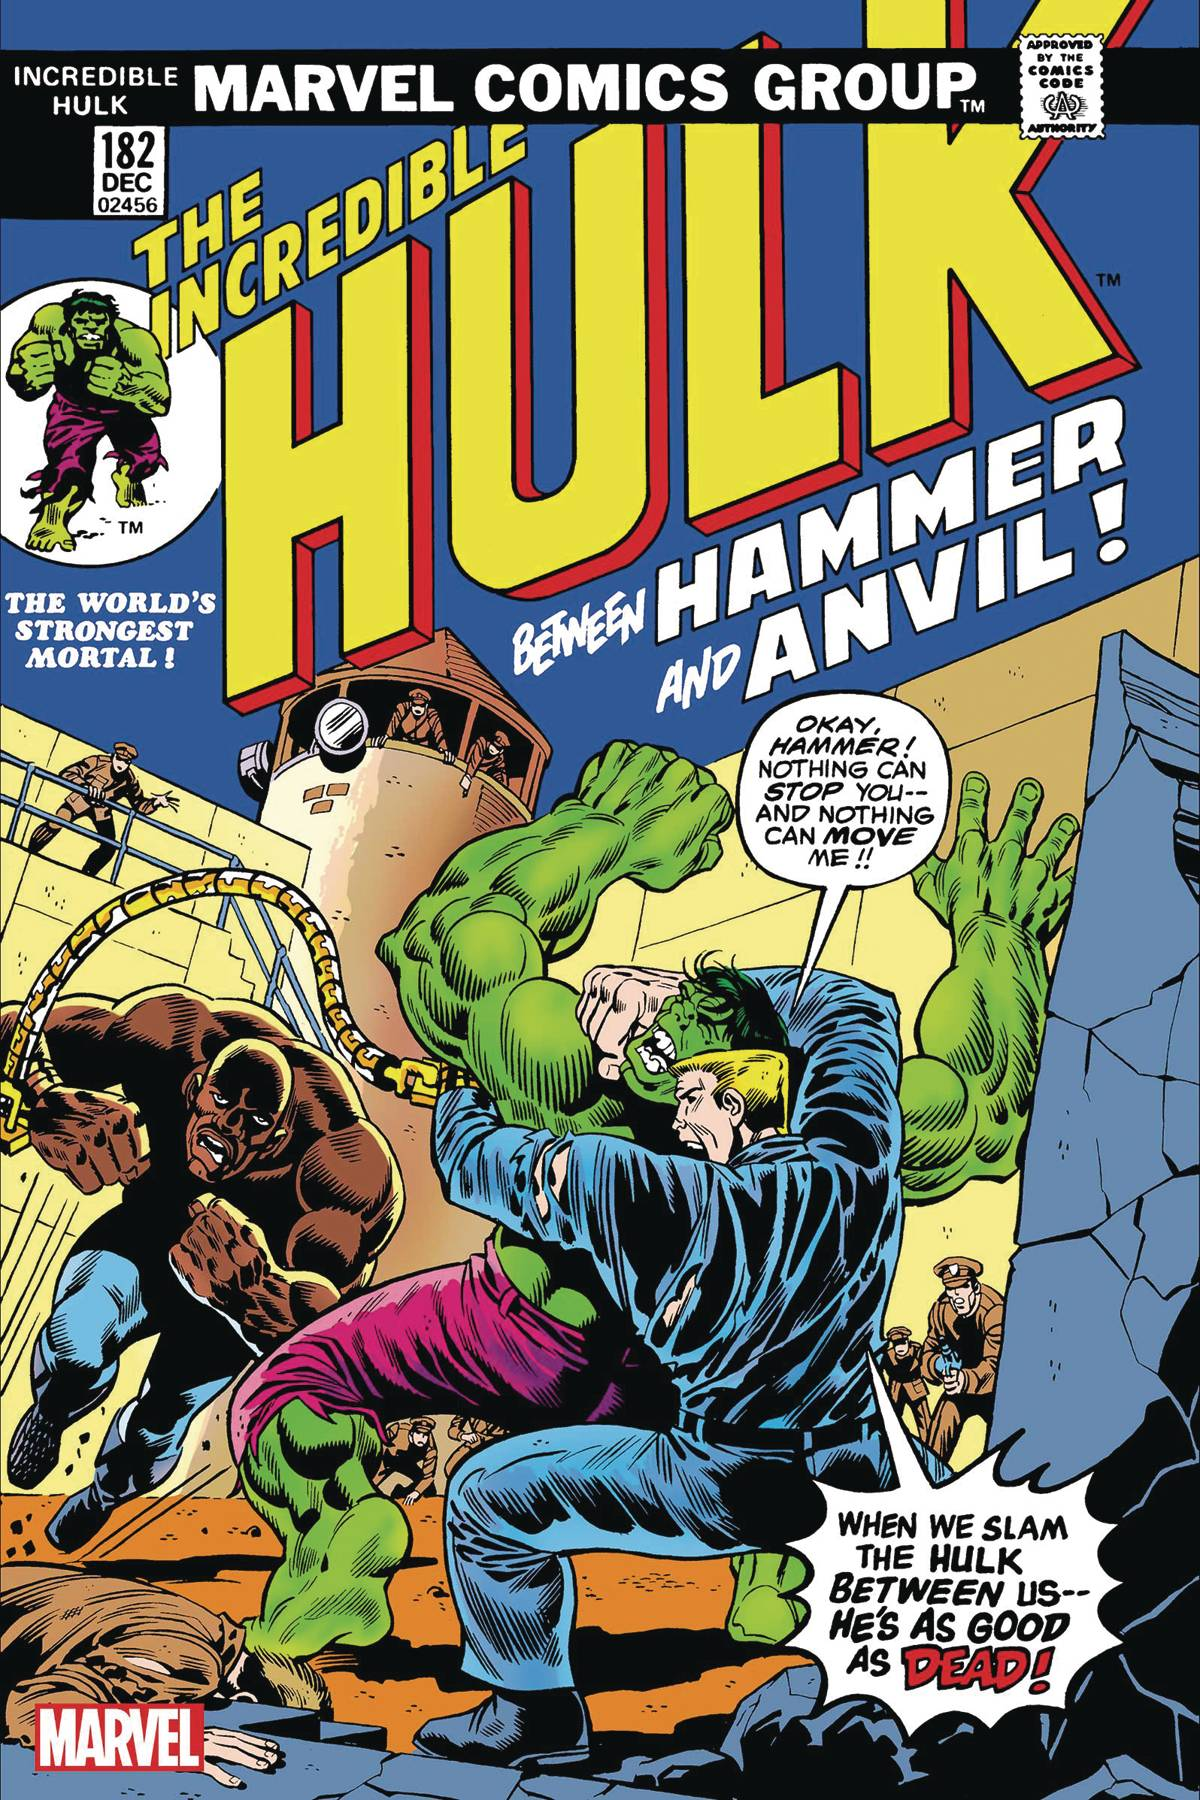 The Incredible Hulk #182 (2020)